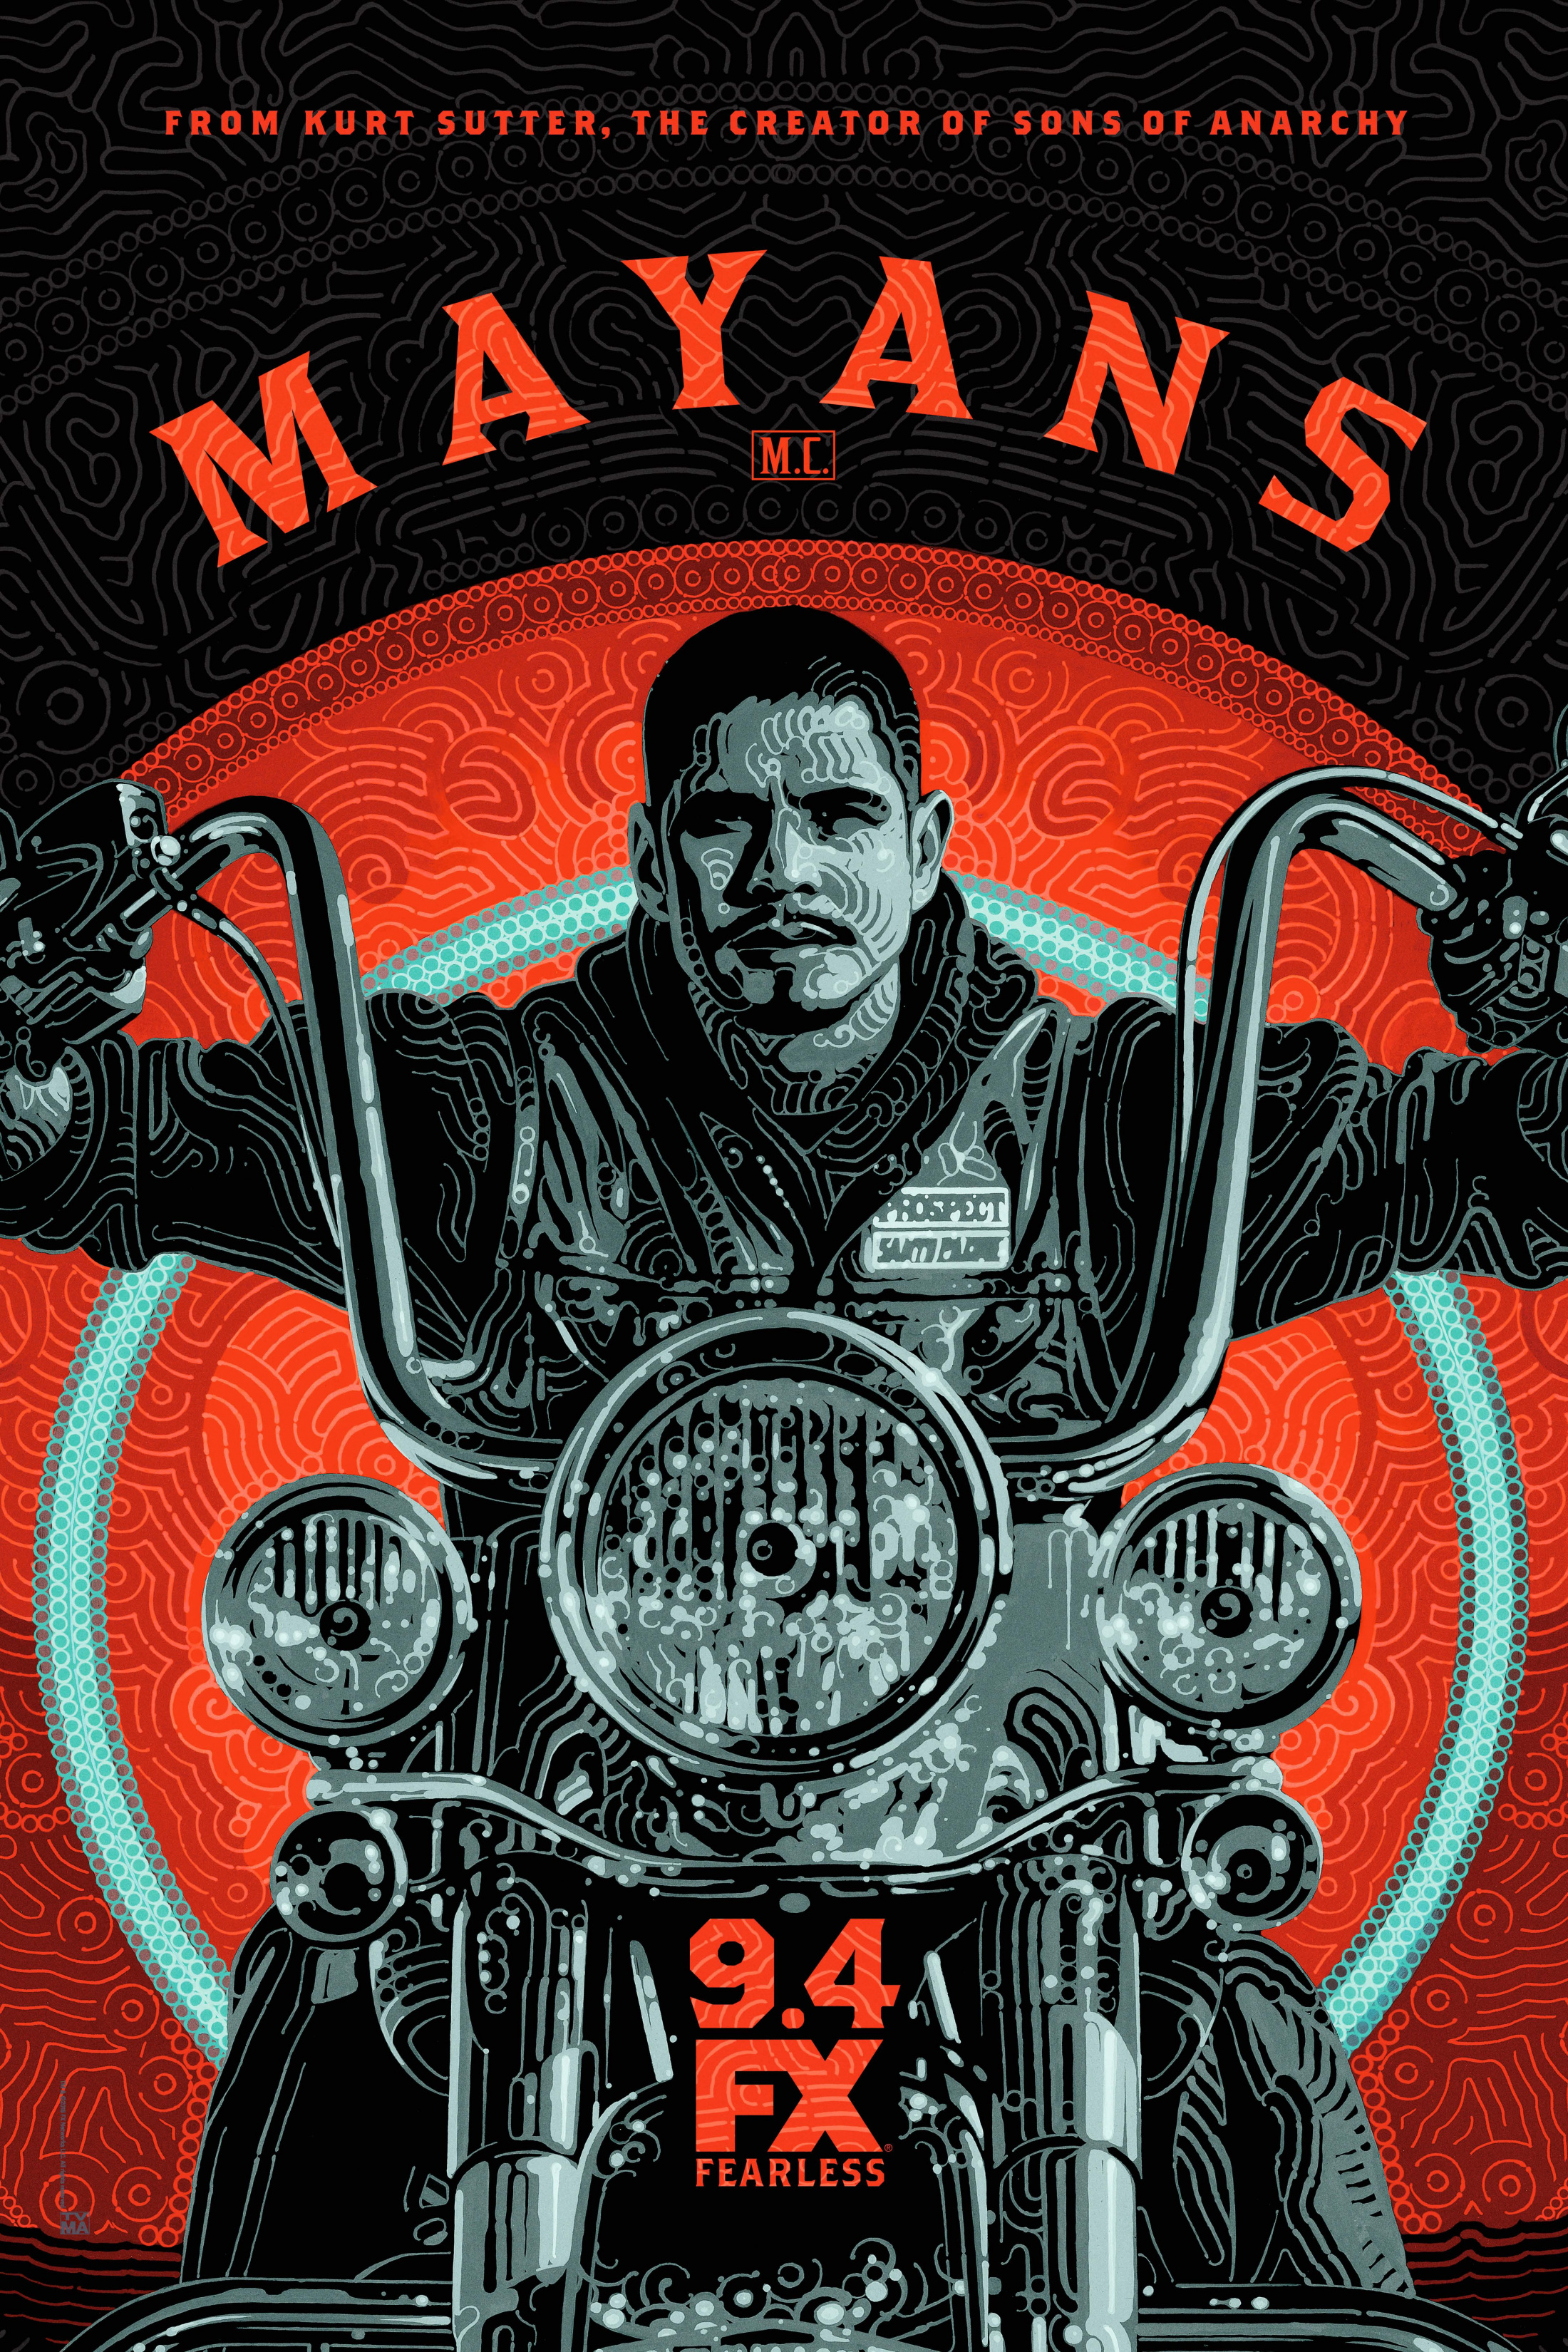 Thumbnail for Mayans M.C. - Key Art 2